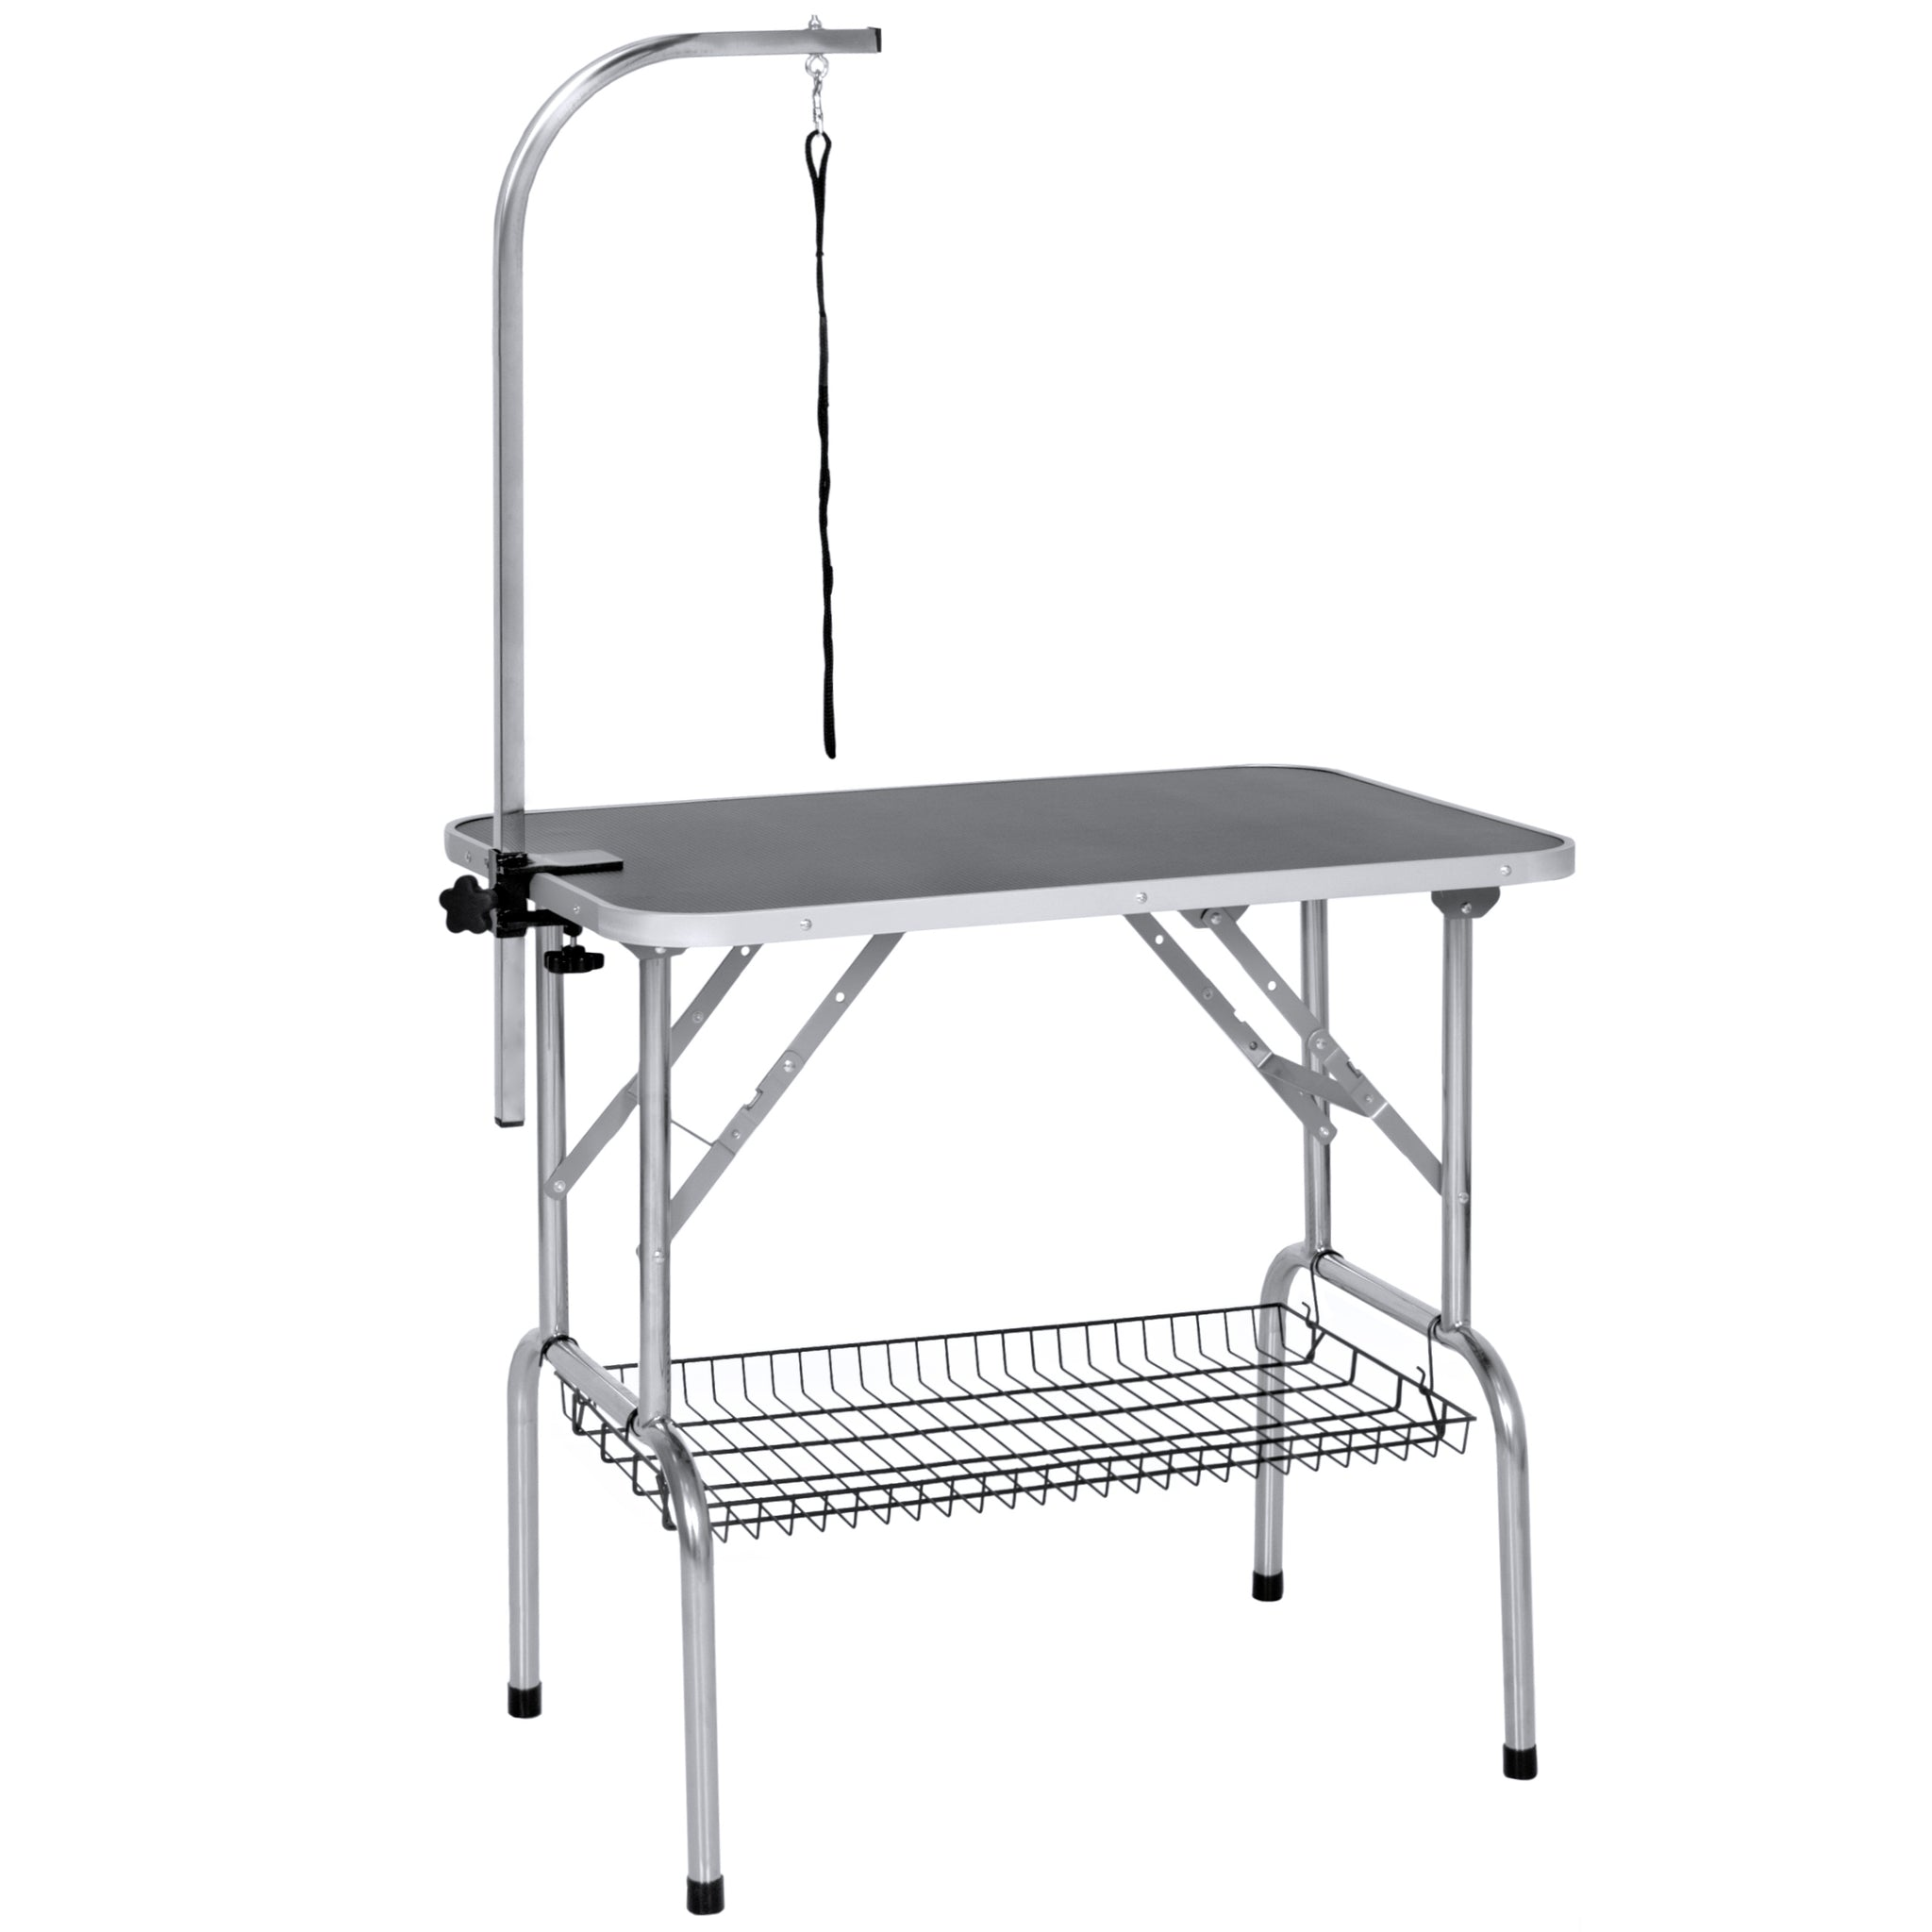 Best Folding Dog Grooming Table